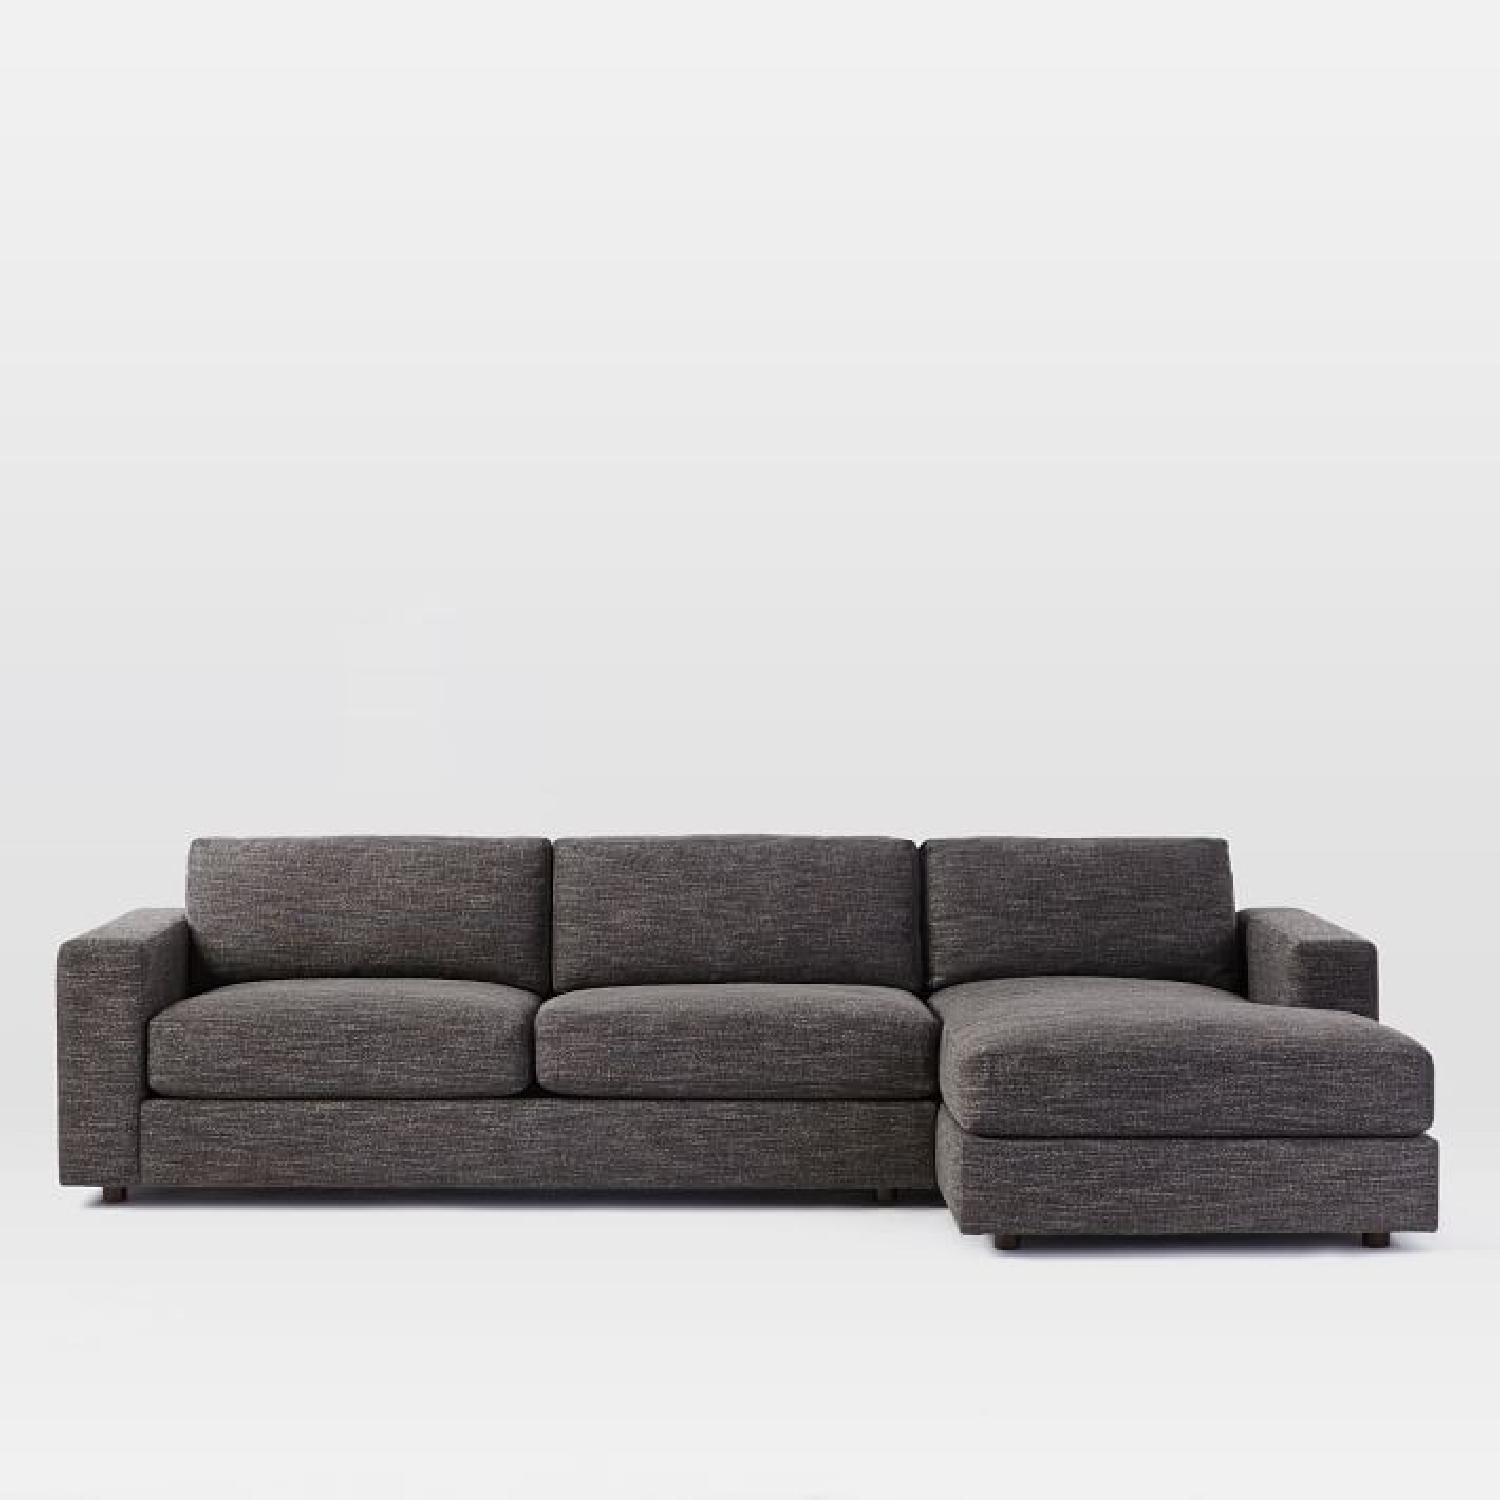 West Elm Urban Large 2-Piece Right Chaise Sectional - AptDeco